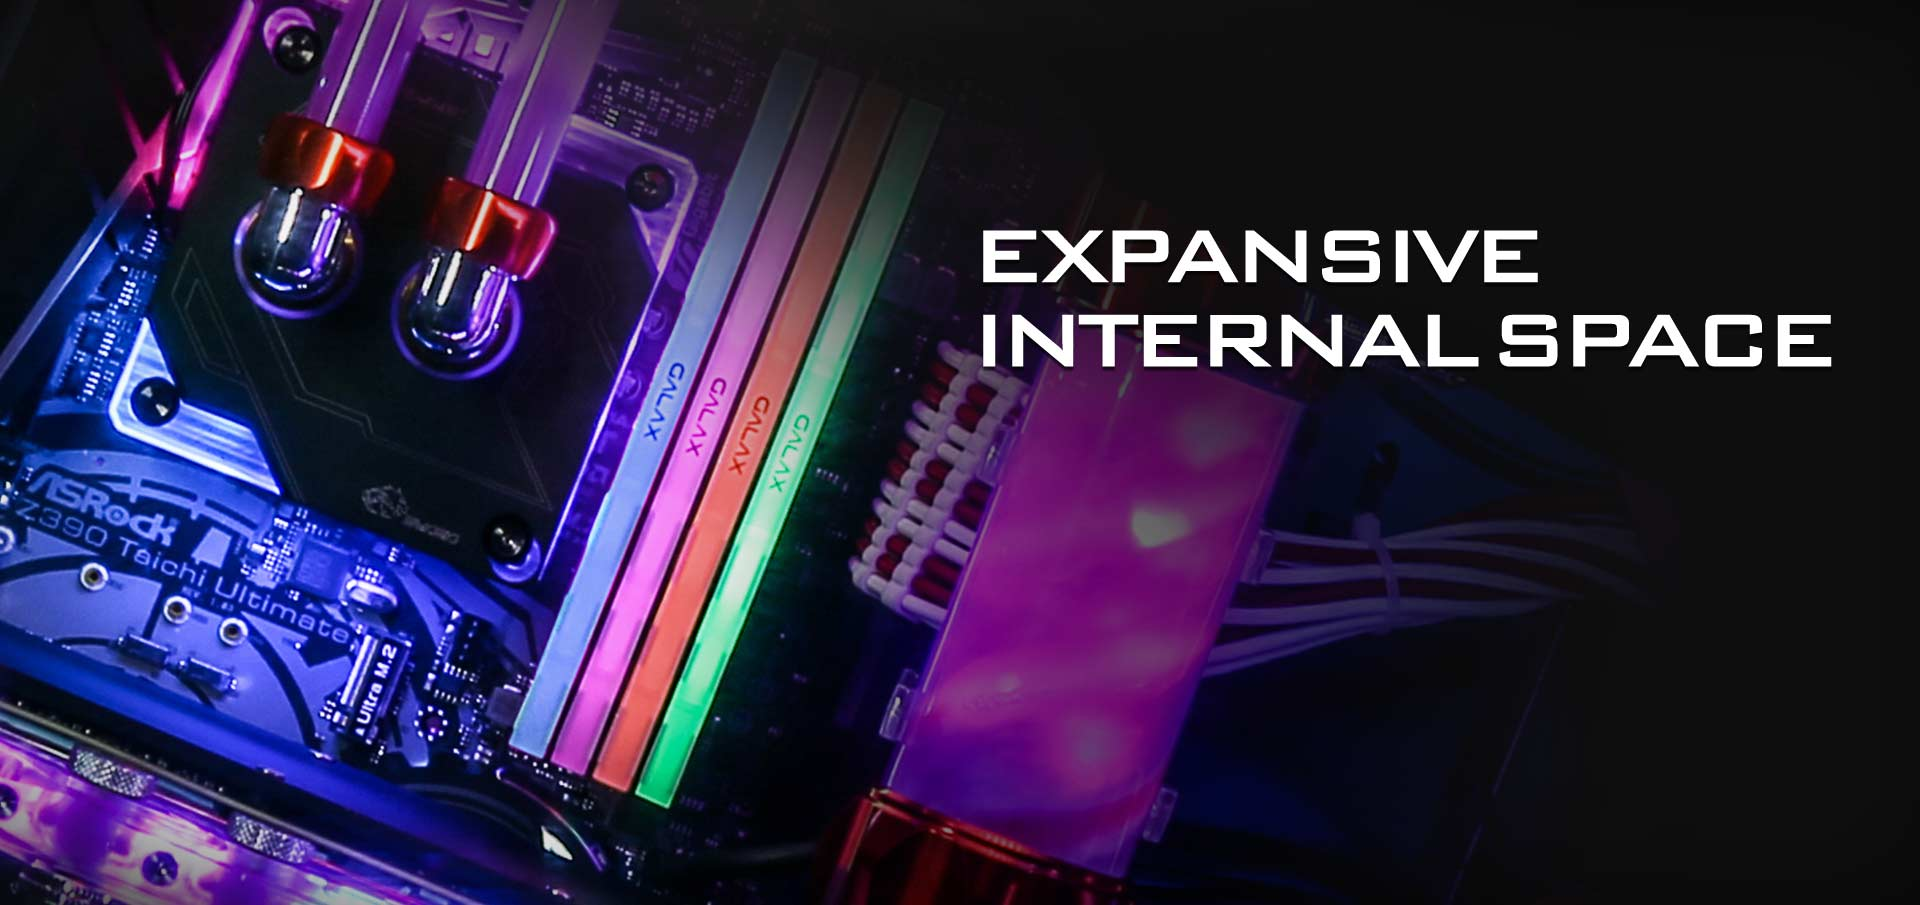 Closeup of a Water-Cooled CPU on a Motherboard Next to RGB-Lit Memory. Header Text Reads: EXPANSIVE INTERNAL SPACE